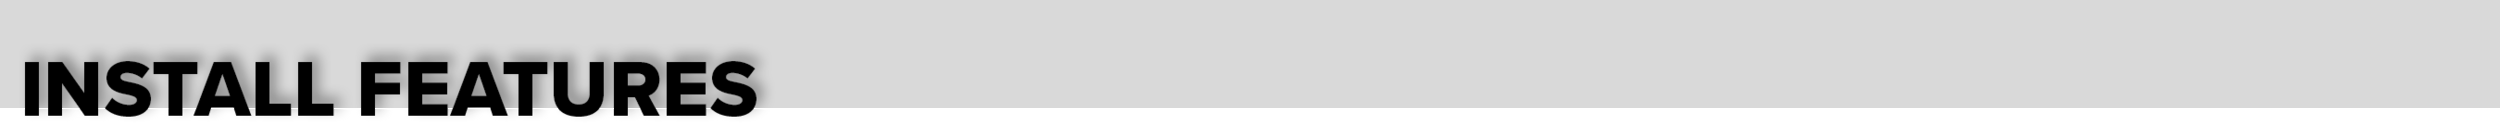 Install Features Banner (Gray).png